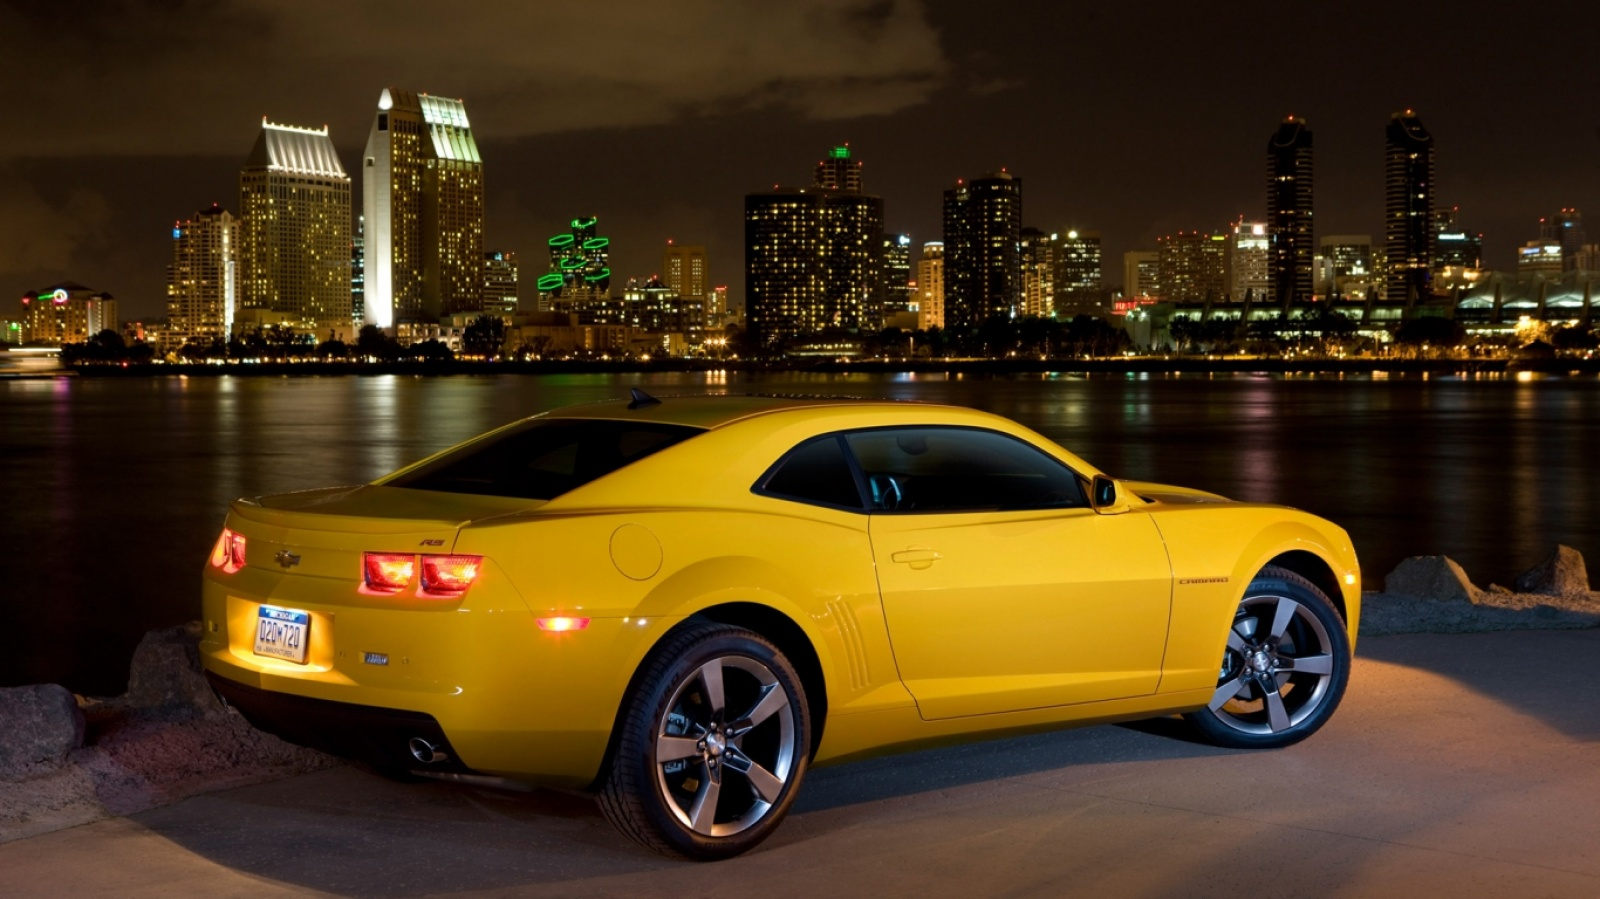 free download wallpapers chevrolet camaro fondos de pantalla camaro hd 1600x899